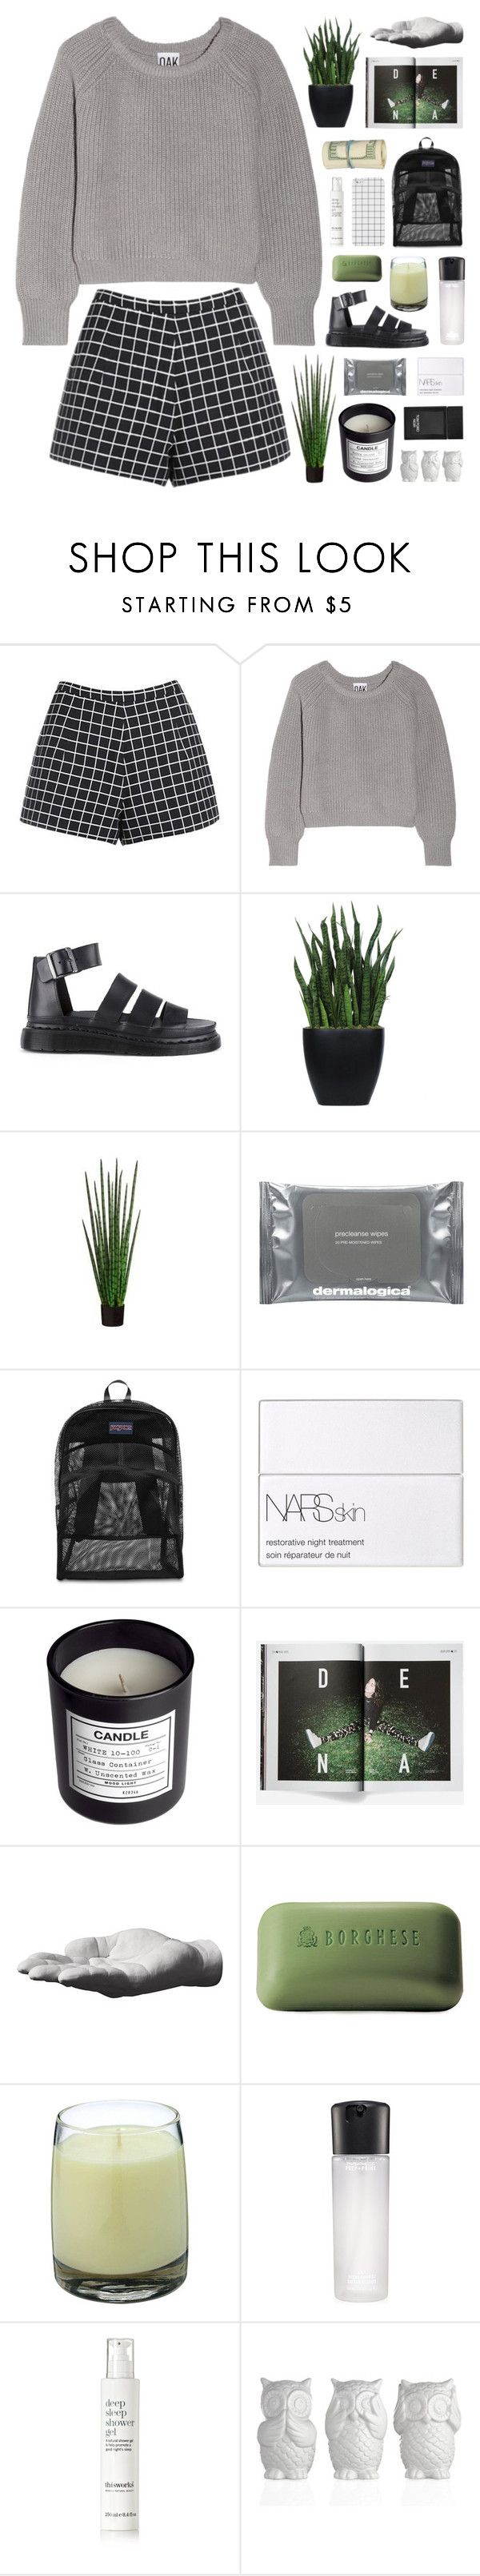 """""""Izzy"""" by novalikarida ❤ liked on Polyvore featuring Oak, Dr. Martens, Lux-Art Silks, Dermalogica, JanSport, NARS Cosmetics, H&M, Carhartt, Harry Allen and Borghese"""